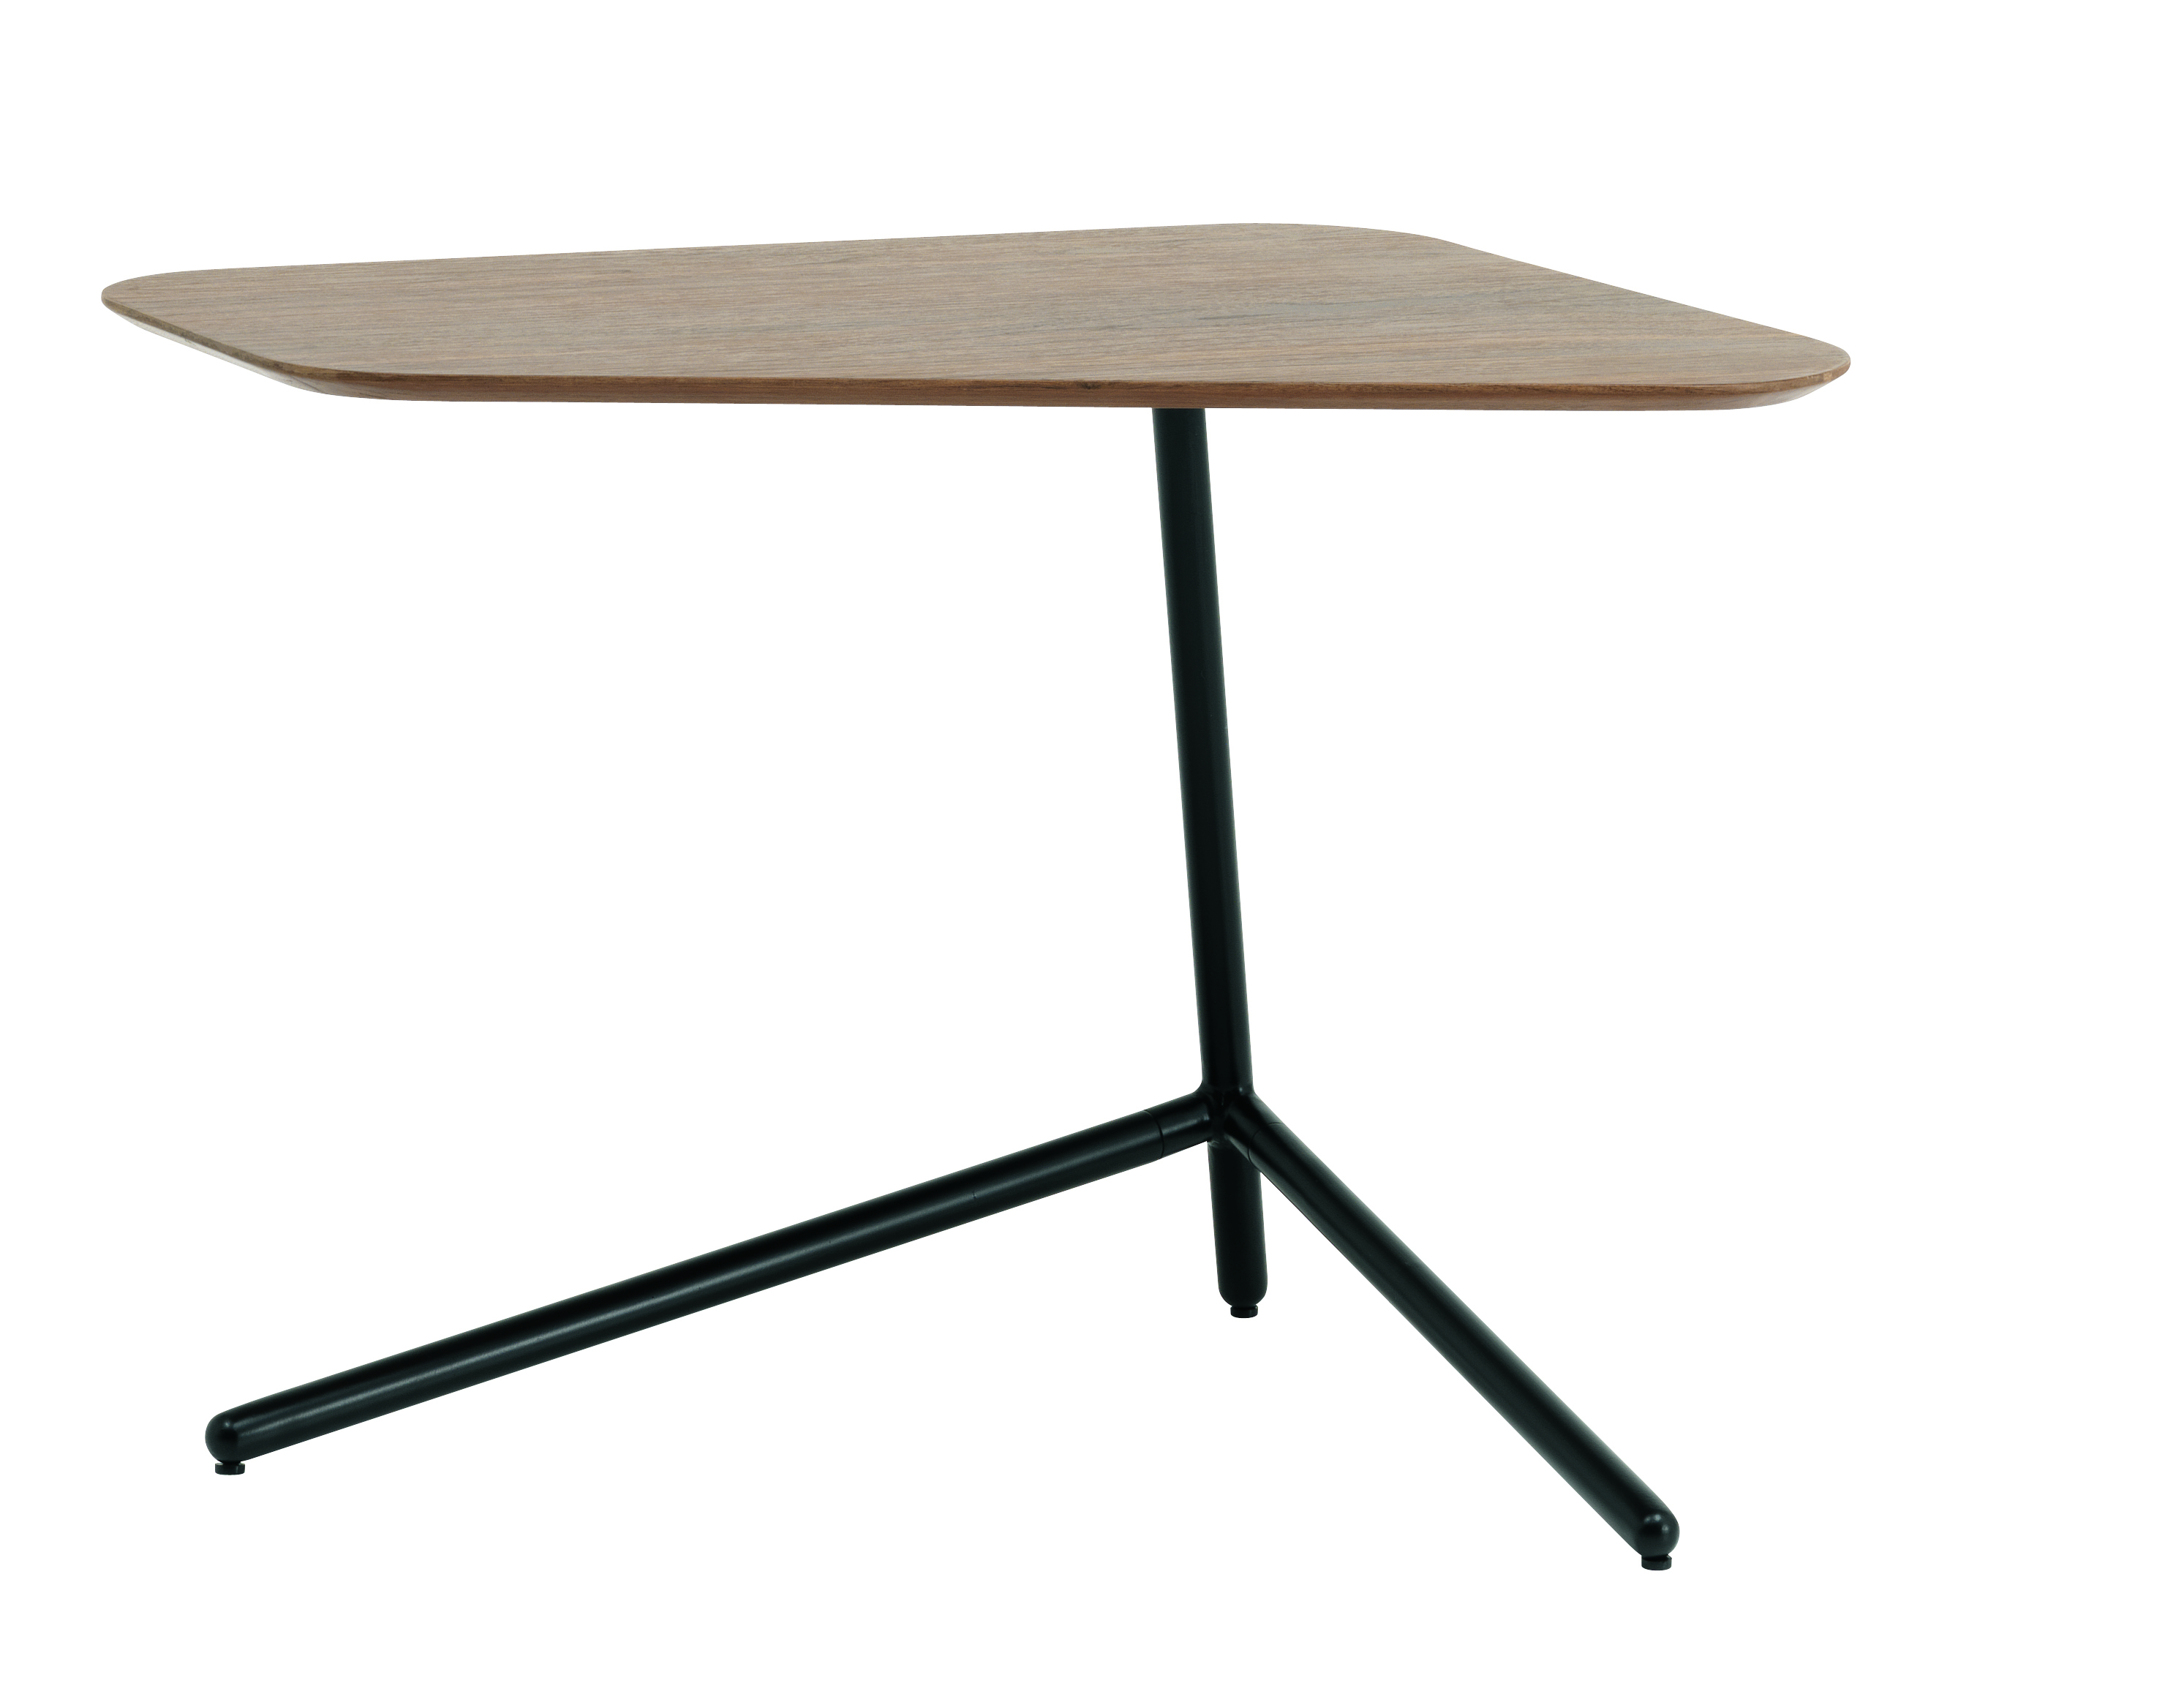 Boconcept Occa Side Table : The OCCA 2110 Side Table is an elegant and yet practical table for